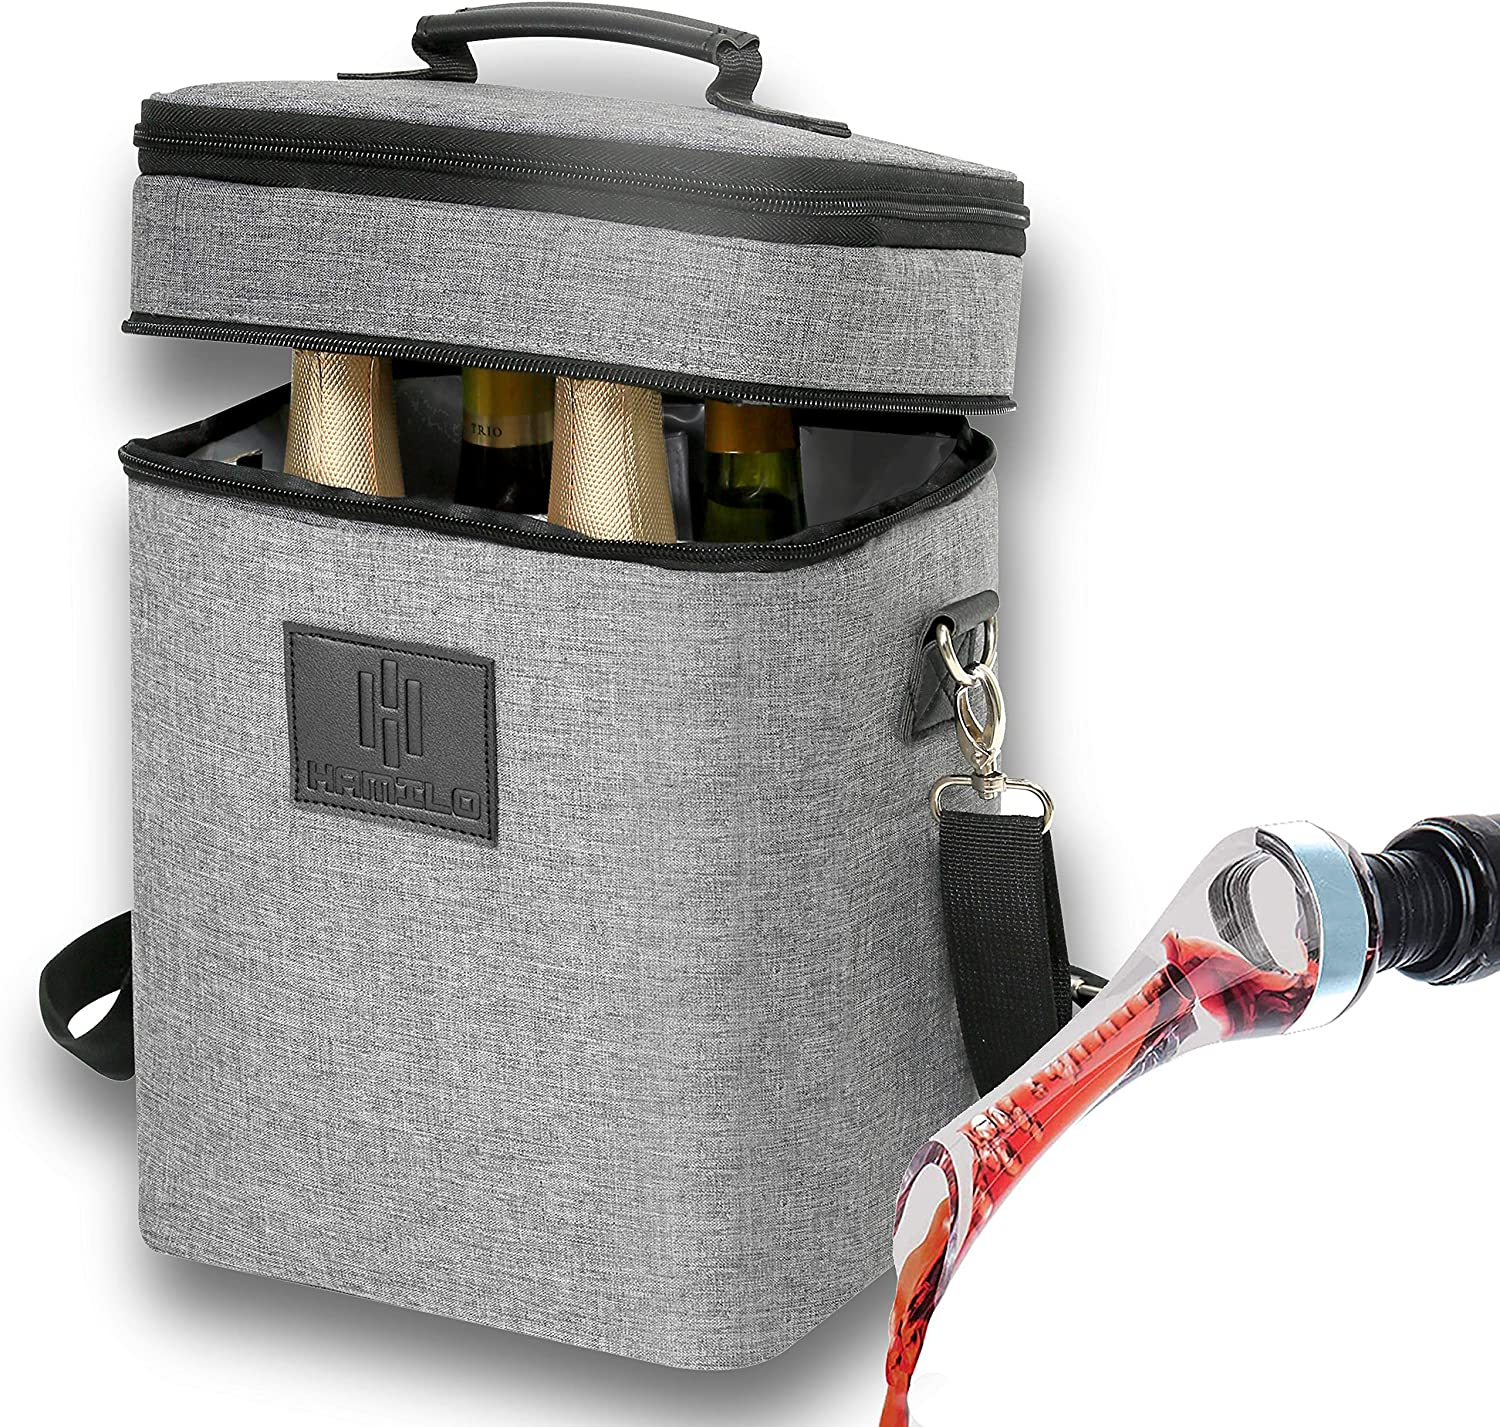 HAMILO 4 Bottle Wine Tote and Wine Aerator Set (Gray) - Insulated Champagne Cooler Purse with Wine Pourer, Wine bag with Wine Decanter Spout, Wine Accessory Gift Set for Wine Lovers, Wine Picnic set